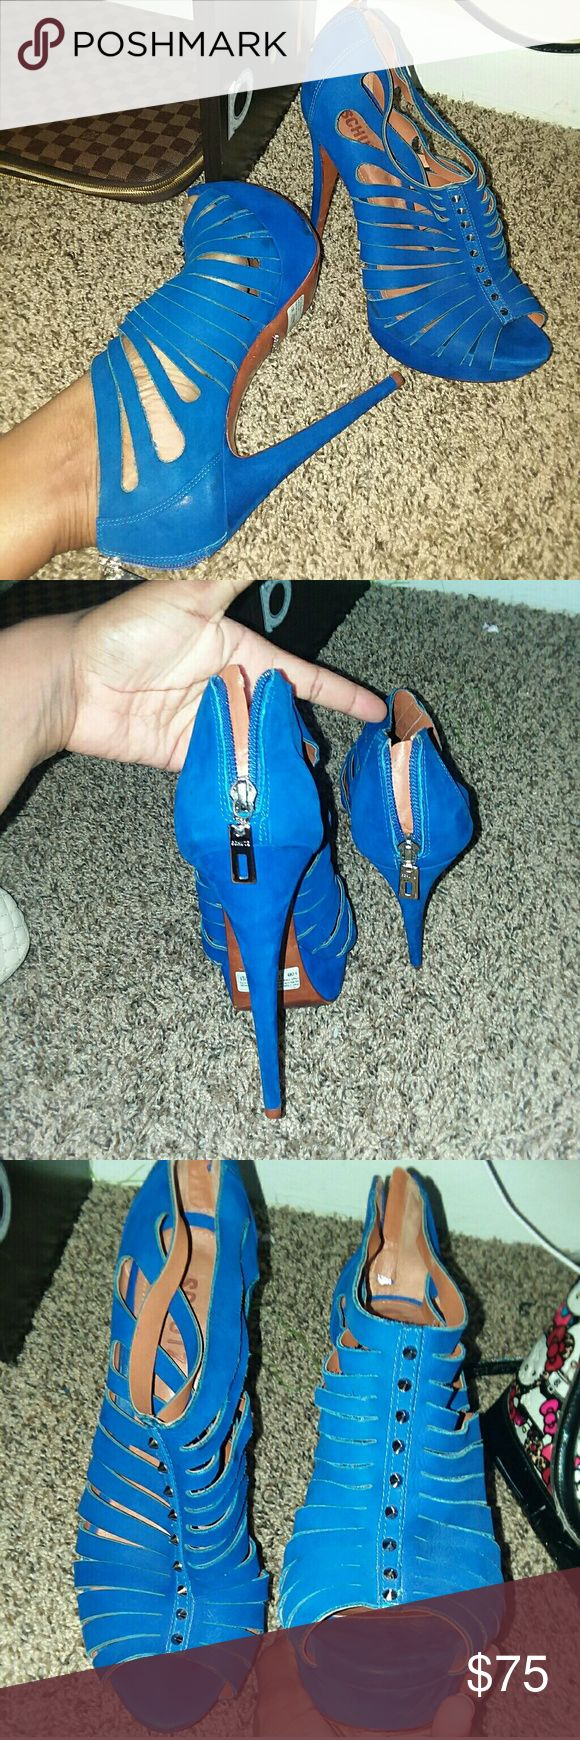 "Summer sexy royal blue high heels 5"" royal blue worn twice bought from Nordstrom in the Aventura mall Miami i lost the white dust bag and box moving from one state to another i paid $274 on sale willing to negotiate price (free gift to my FIRST BUYER) SCHUTZ Shoes Heels"